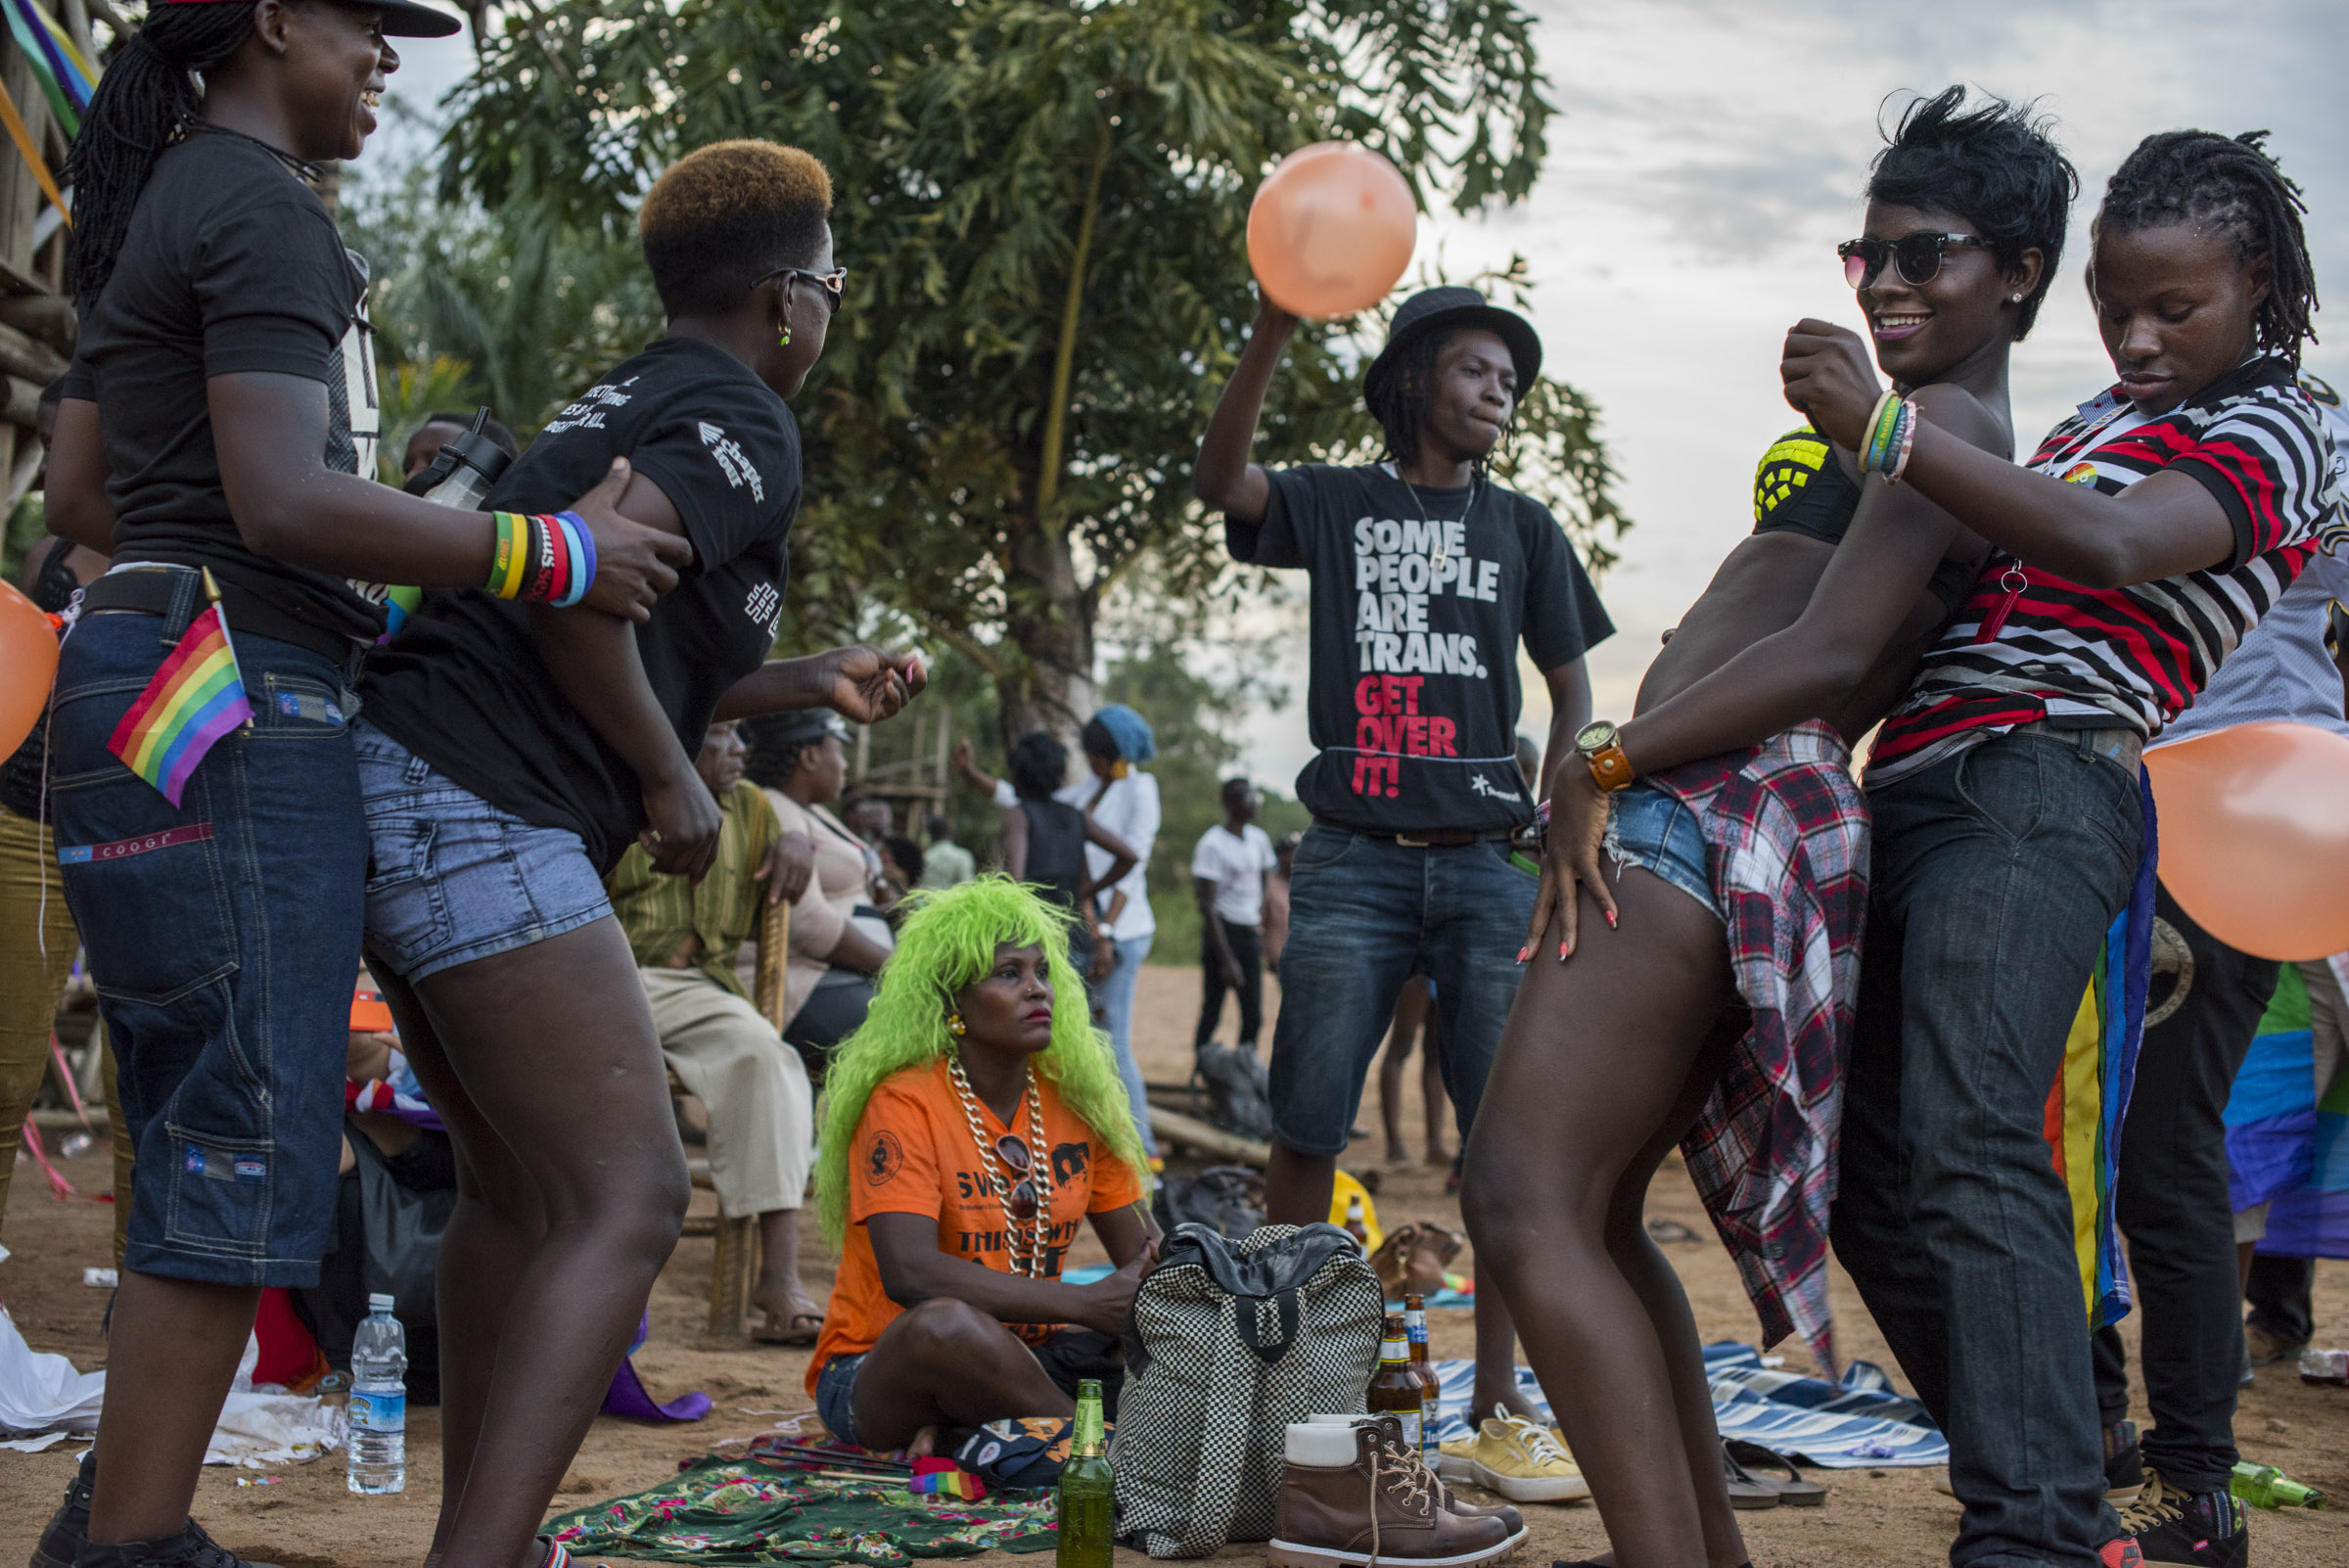 After the Pride march, members of the LGBT community and their supporters celebrate into the evening on the shores of Lake Victoria in Entebbe, 40 km from Kampala. Safety concerns made it impossible to hold the march in a more public location like downtown Kampala. (Photo by Diana Zeyneb Alhindawi/GroundTruth)